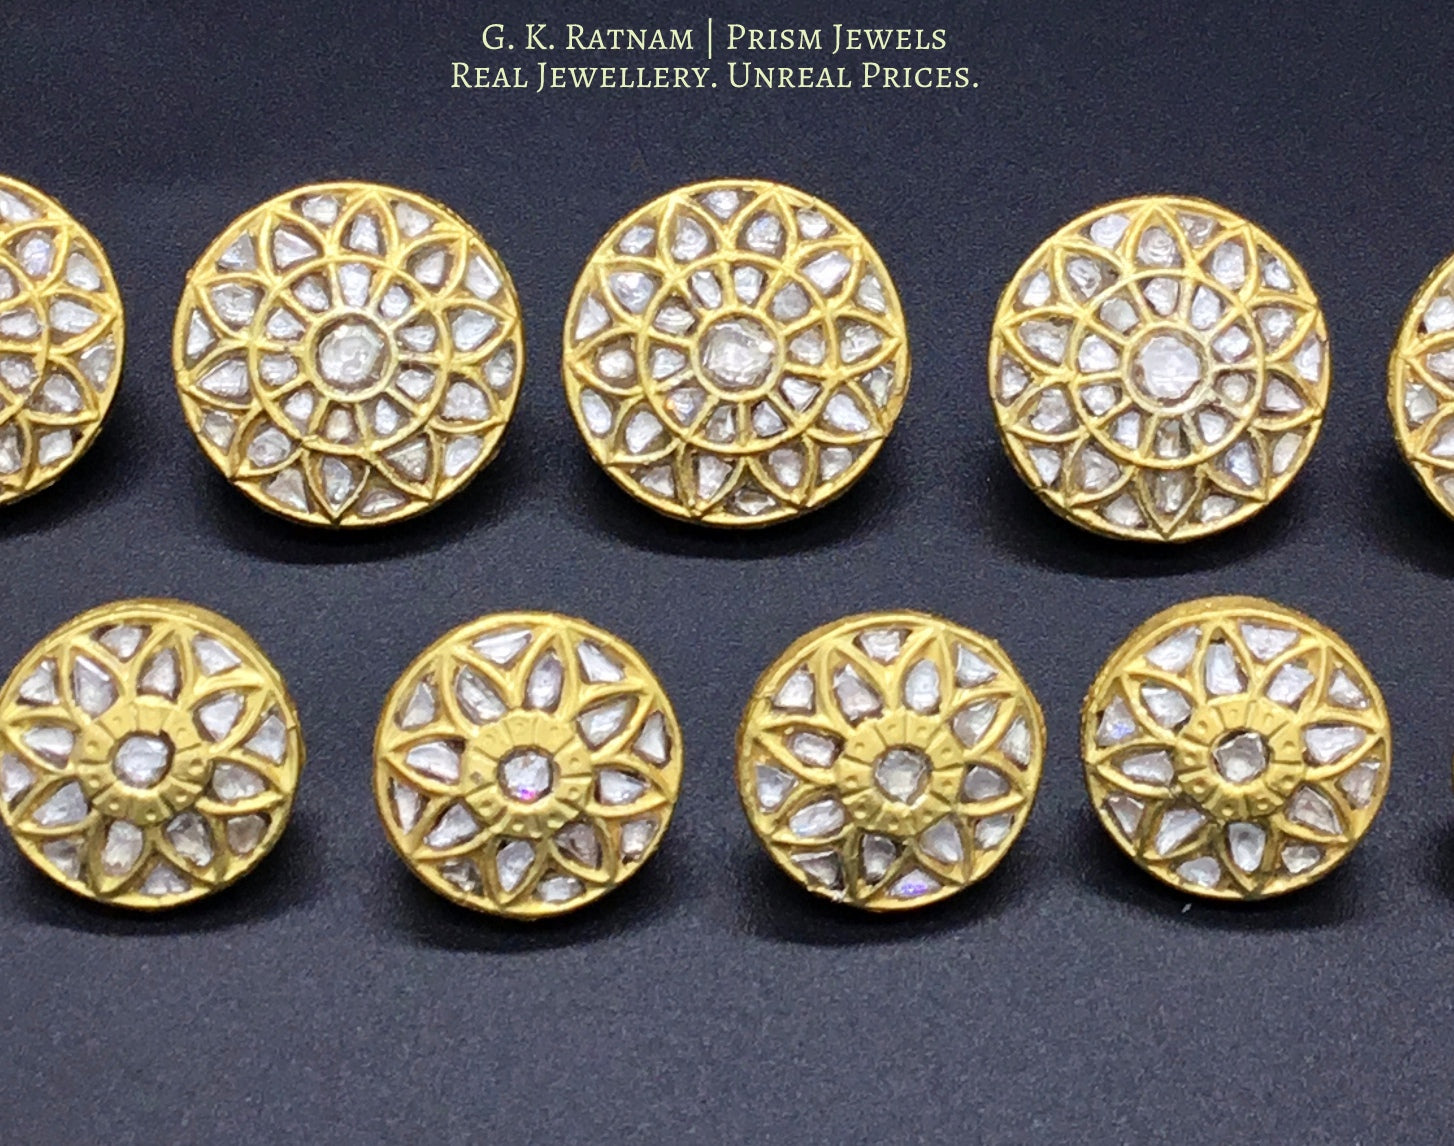 23k Gold and Diamond Polki all-white Sherwani Buttons for Men - gold diamond polki kundan meena jadau jewellery